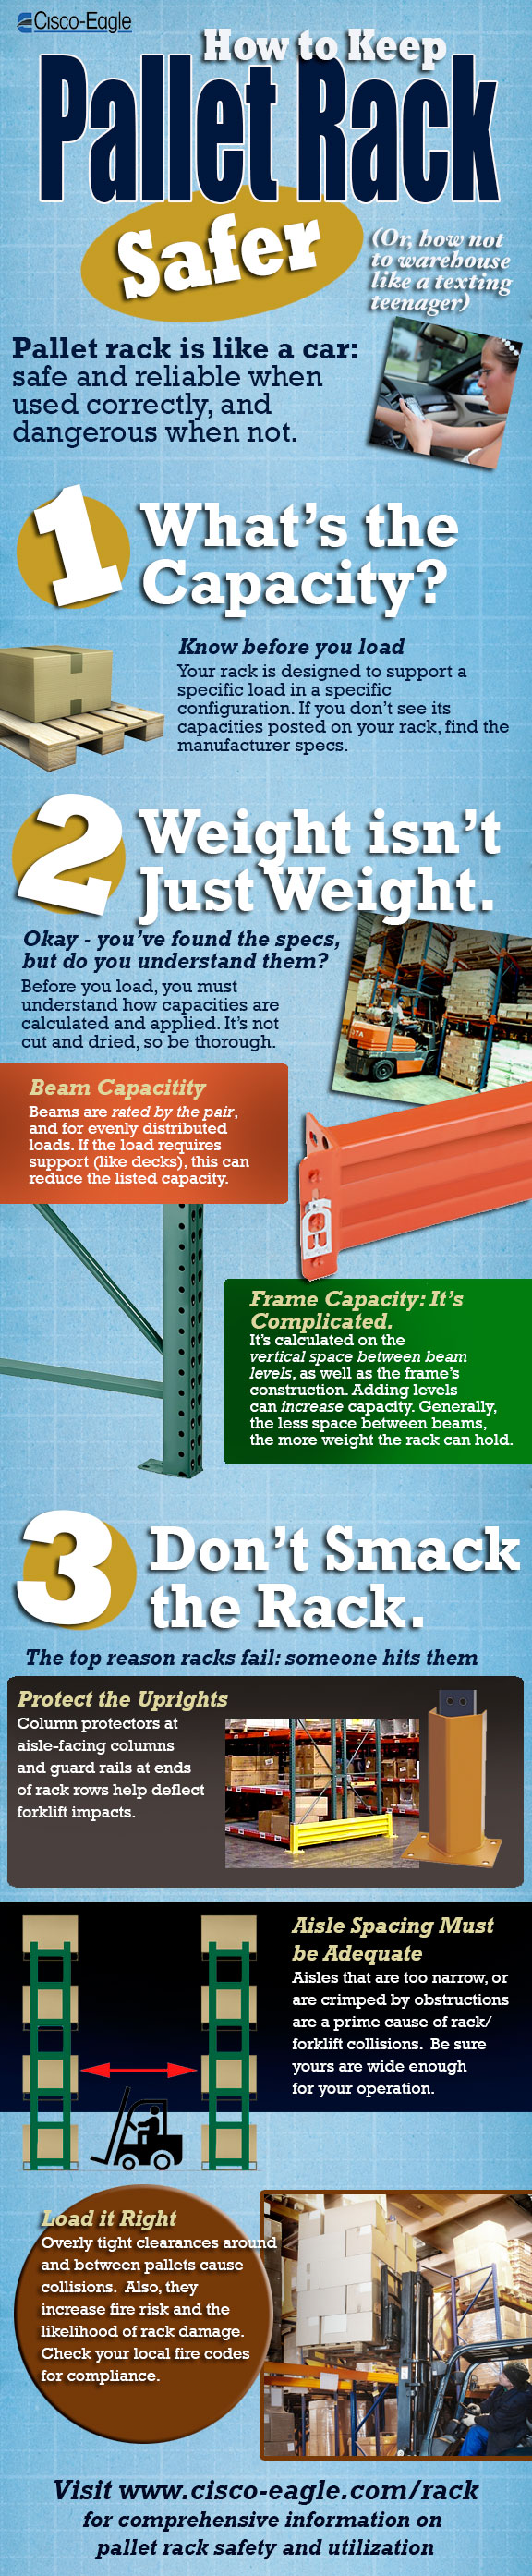 Infographic: Safe Pallet Rack Operations